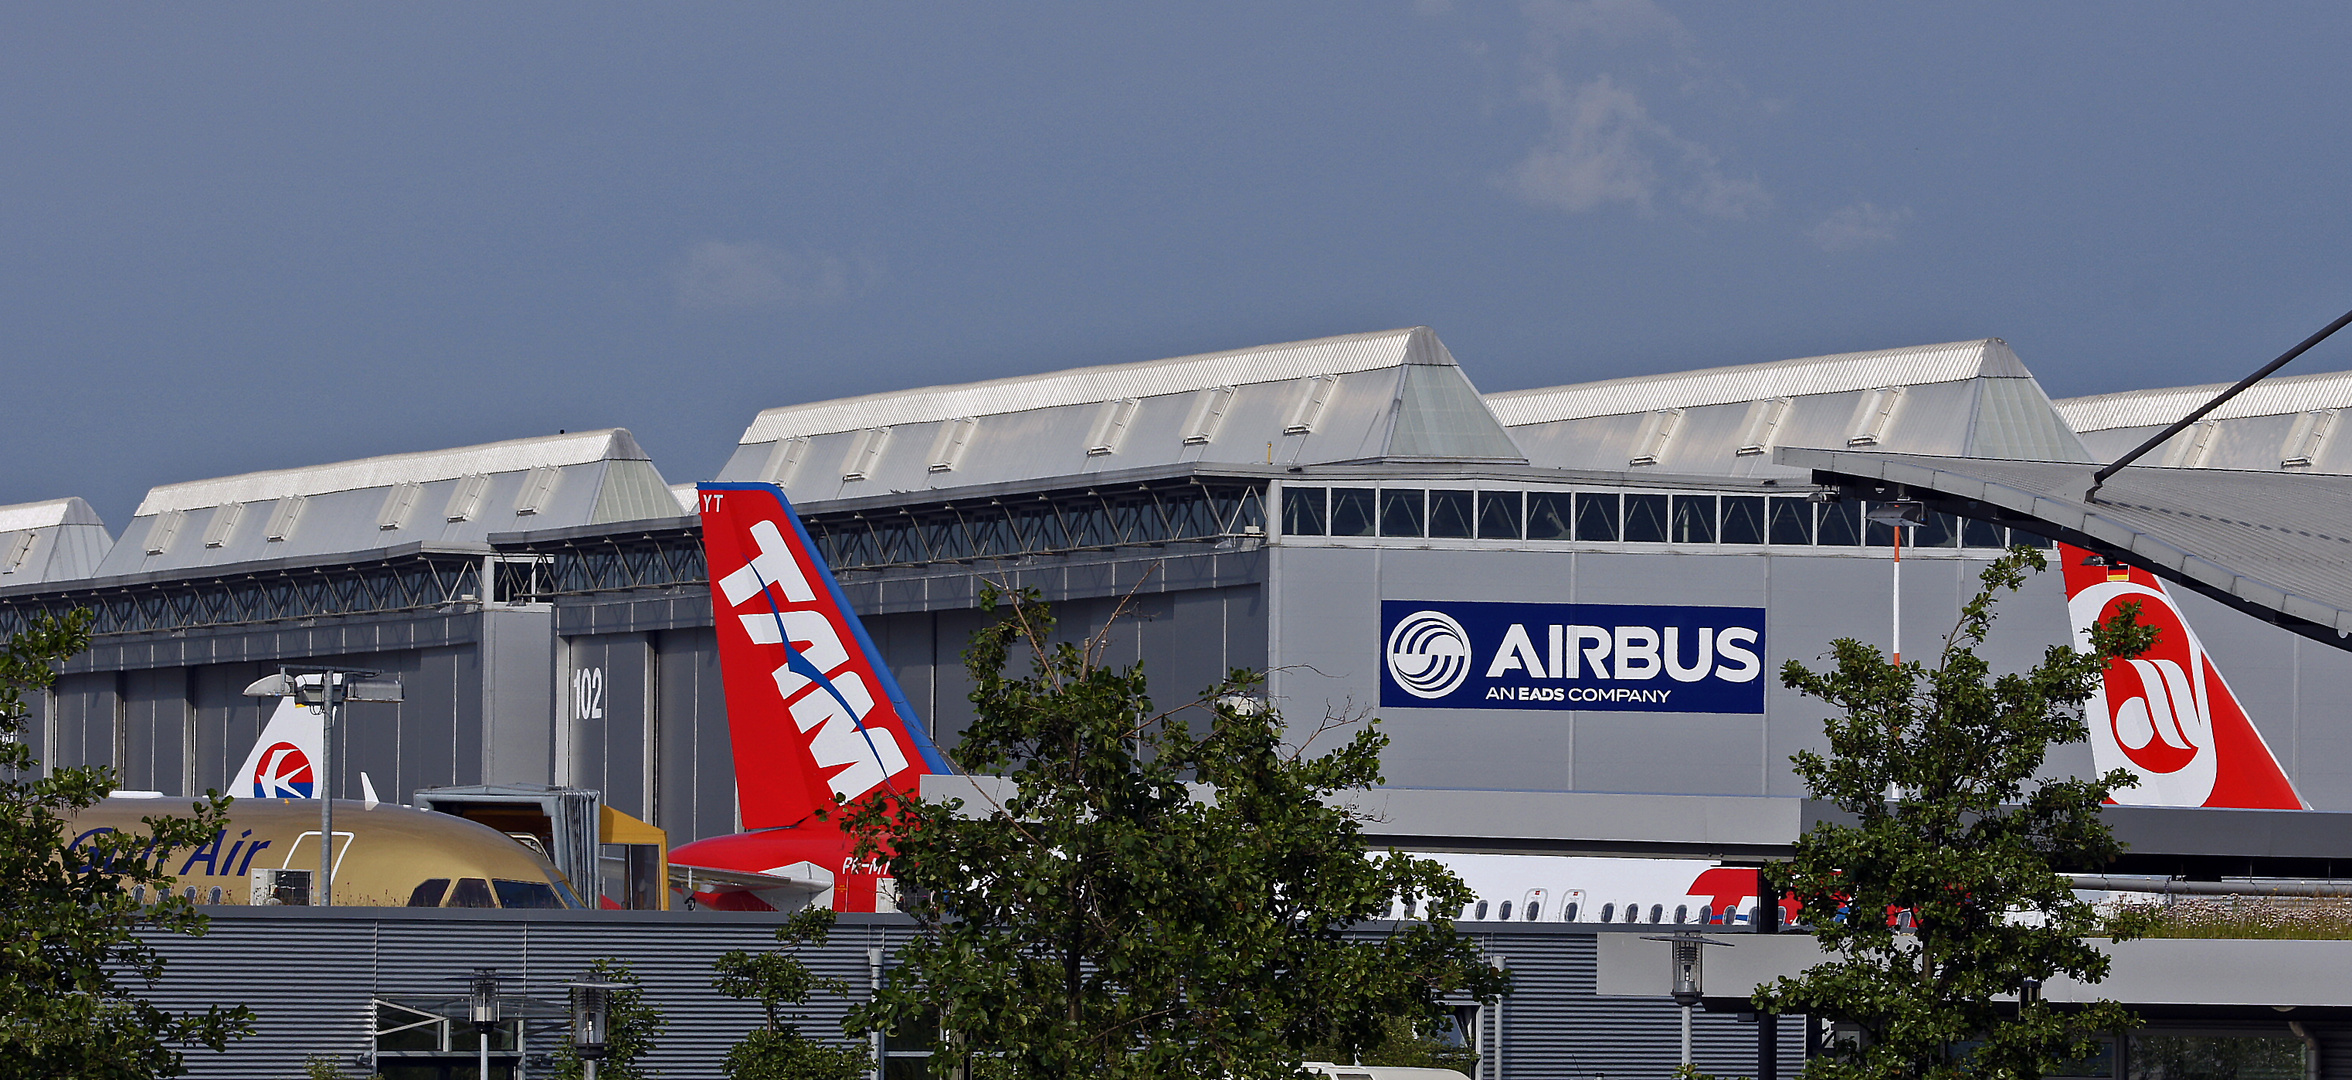 Airbus Deliverie Center / XFW